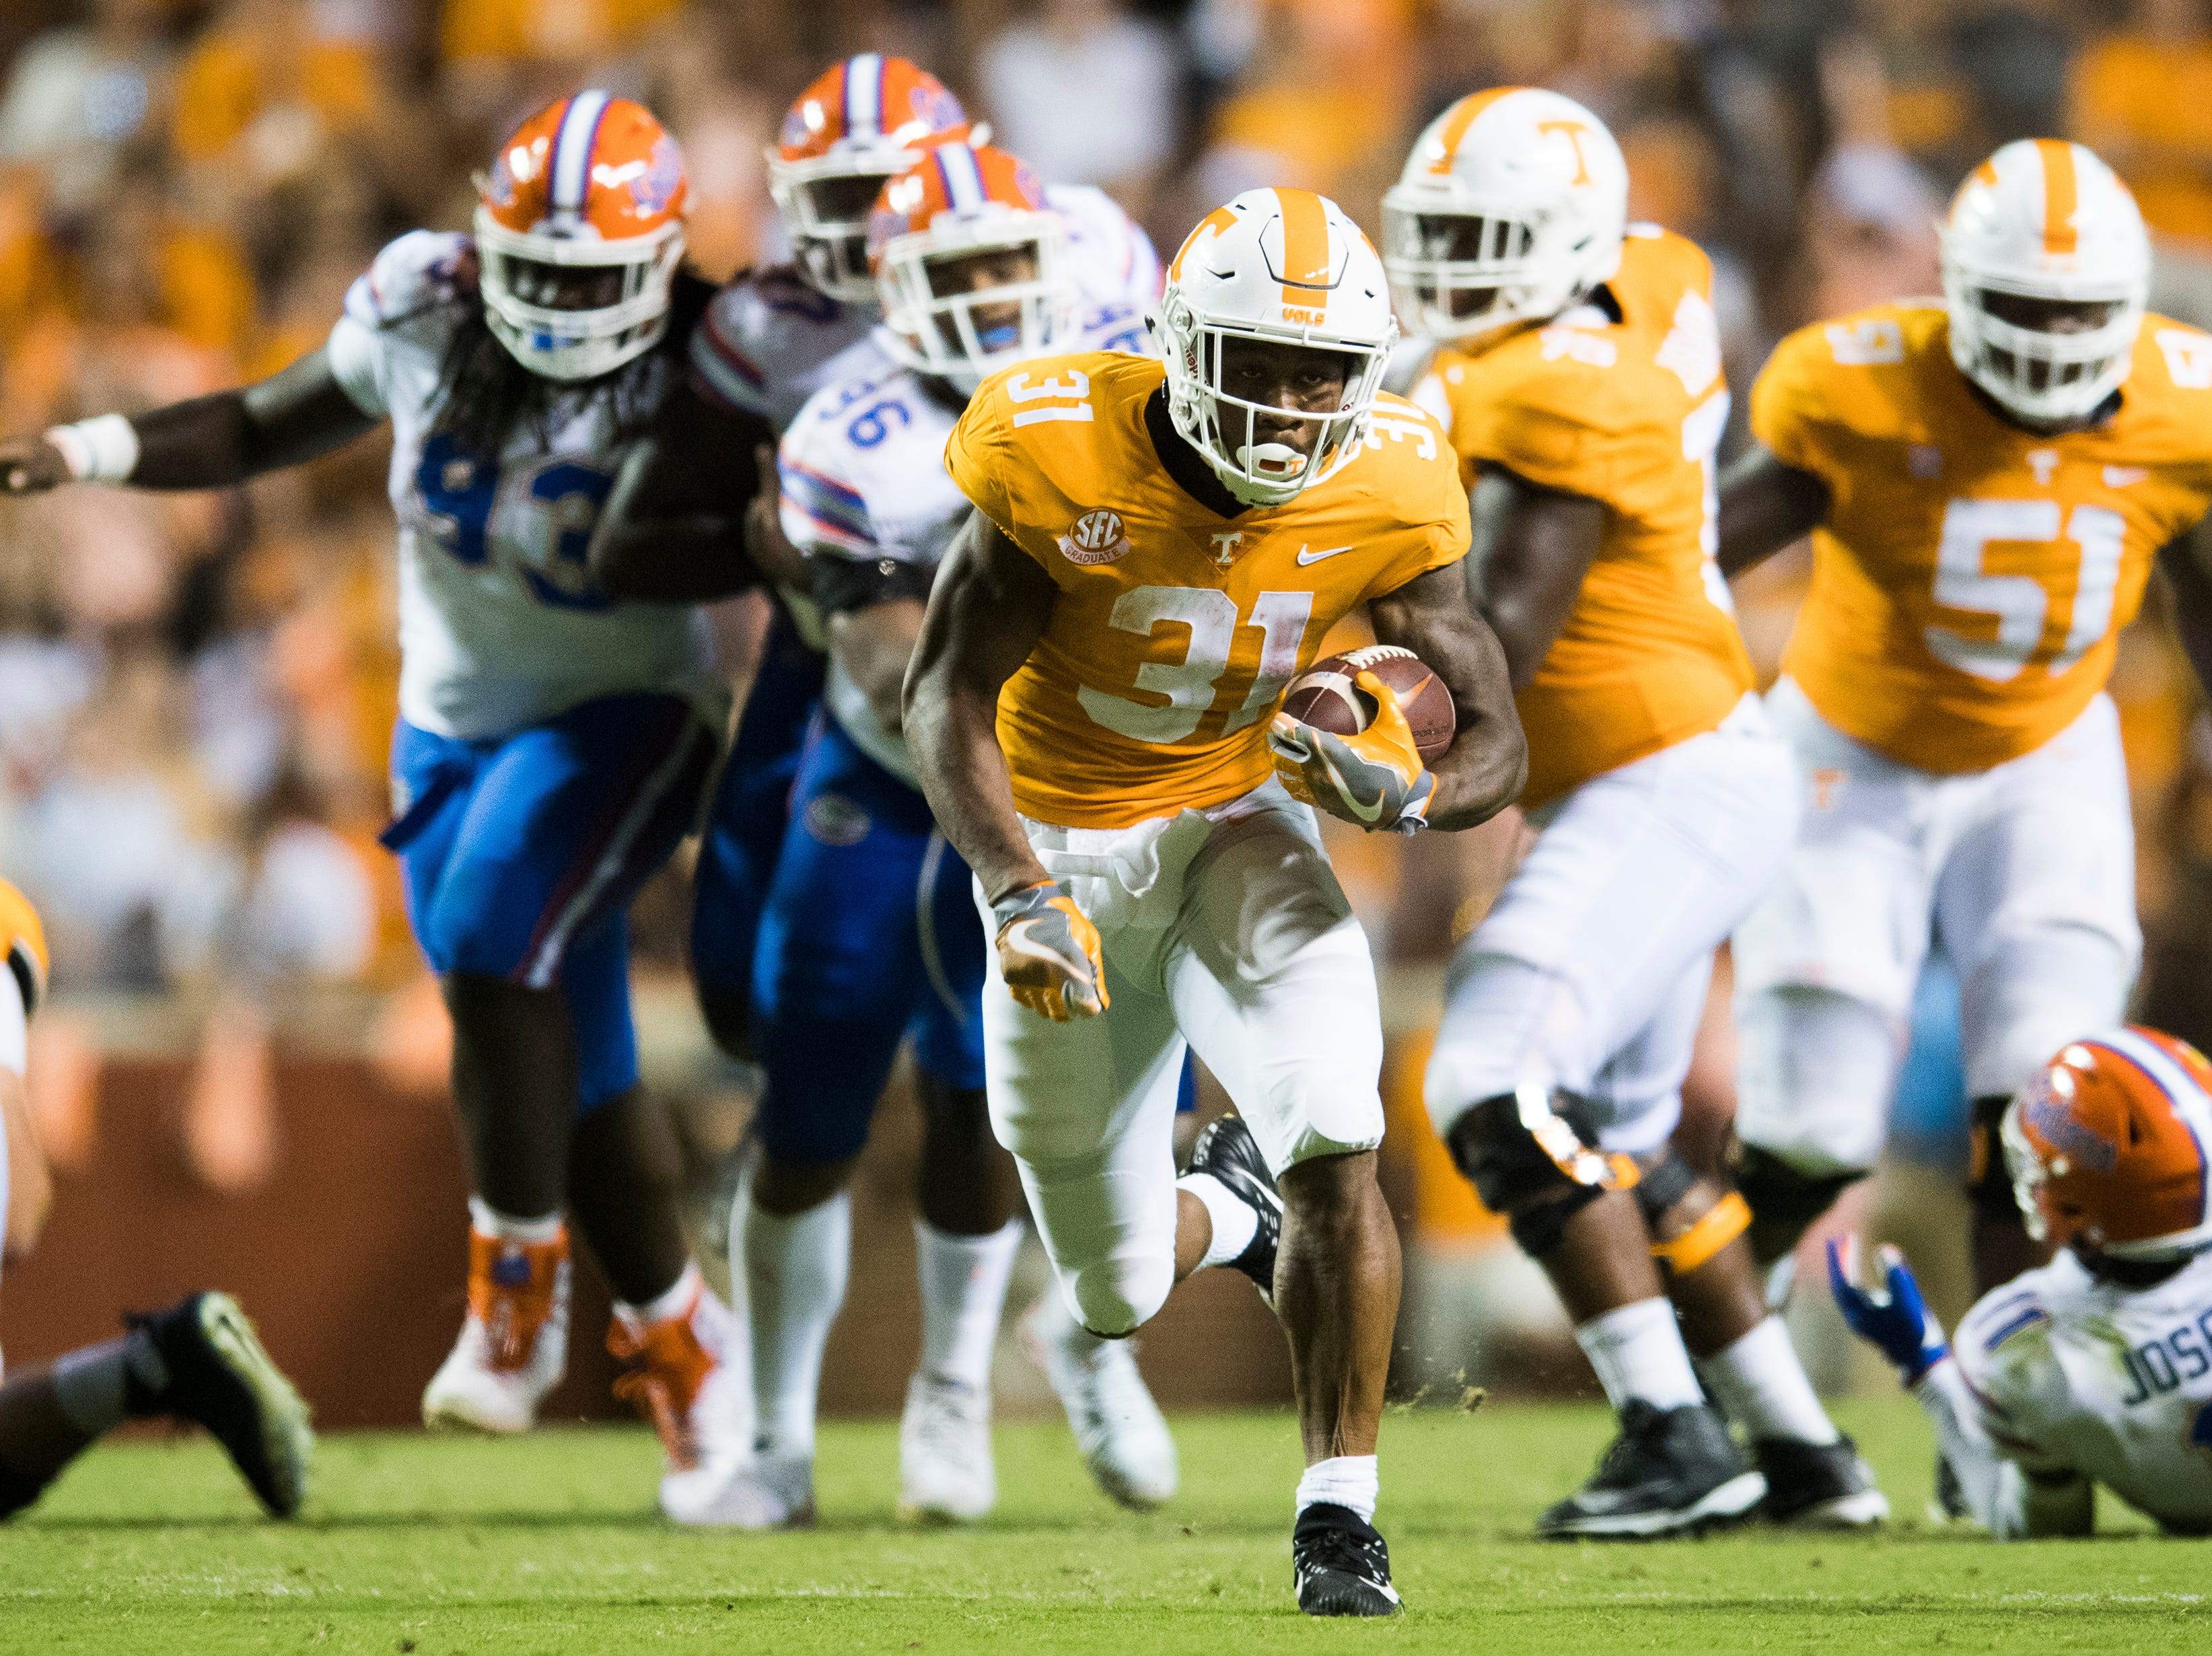 Tennessee running back Madre London (31) makes a break down the field during a game between Tennessee and Florida at Neyland Stadium in Knoxville, Tennessee on Saturday, September 22, 2018.